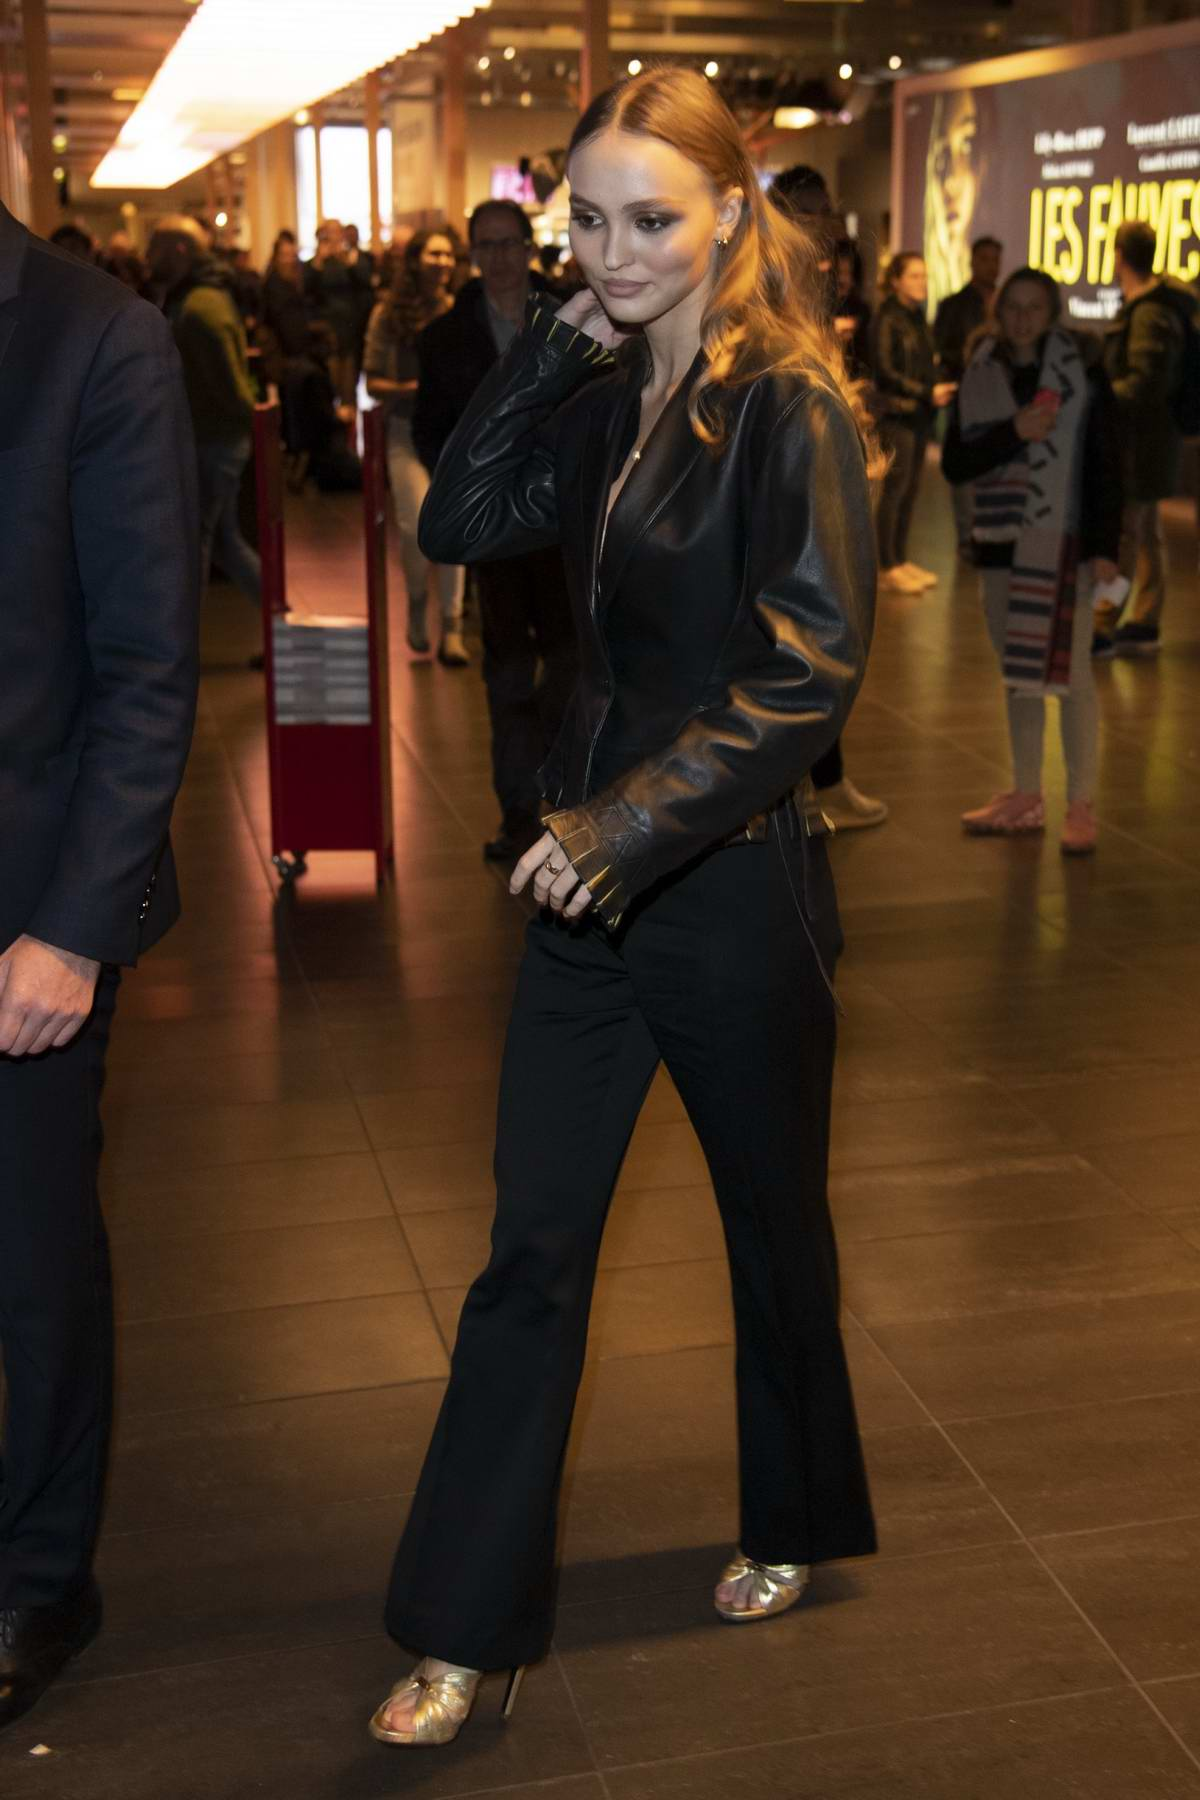 Lily-Rose Depp attends the premiere of 'Les Fauves' held at the MK2 cinema in Paris, France